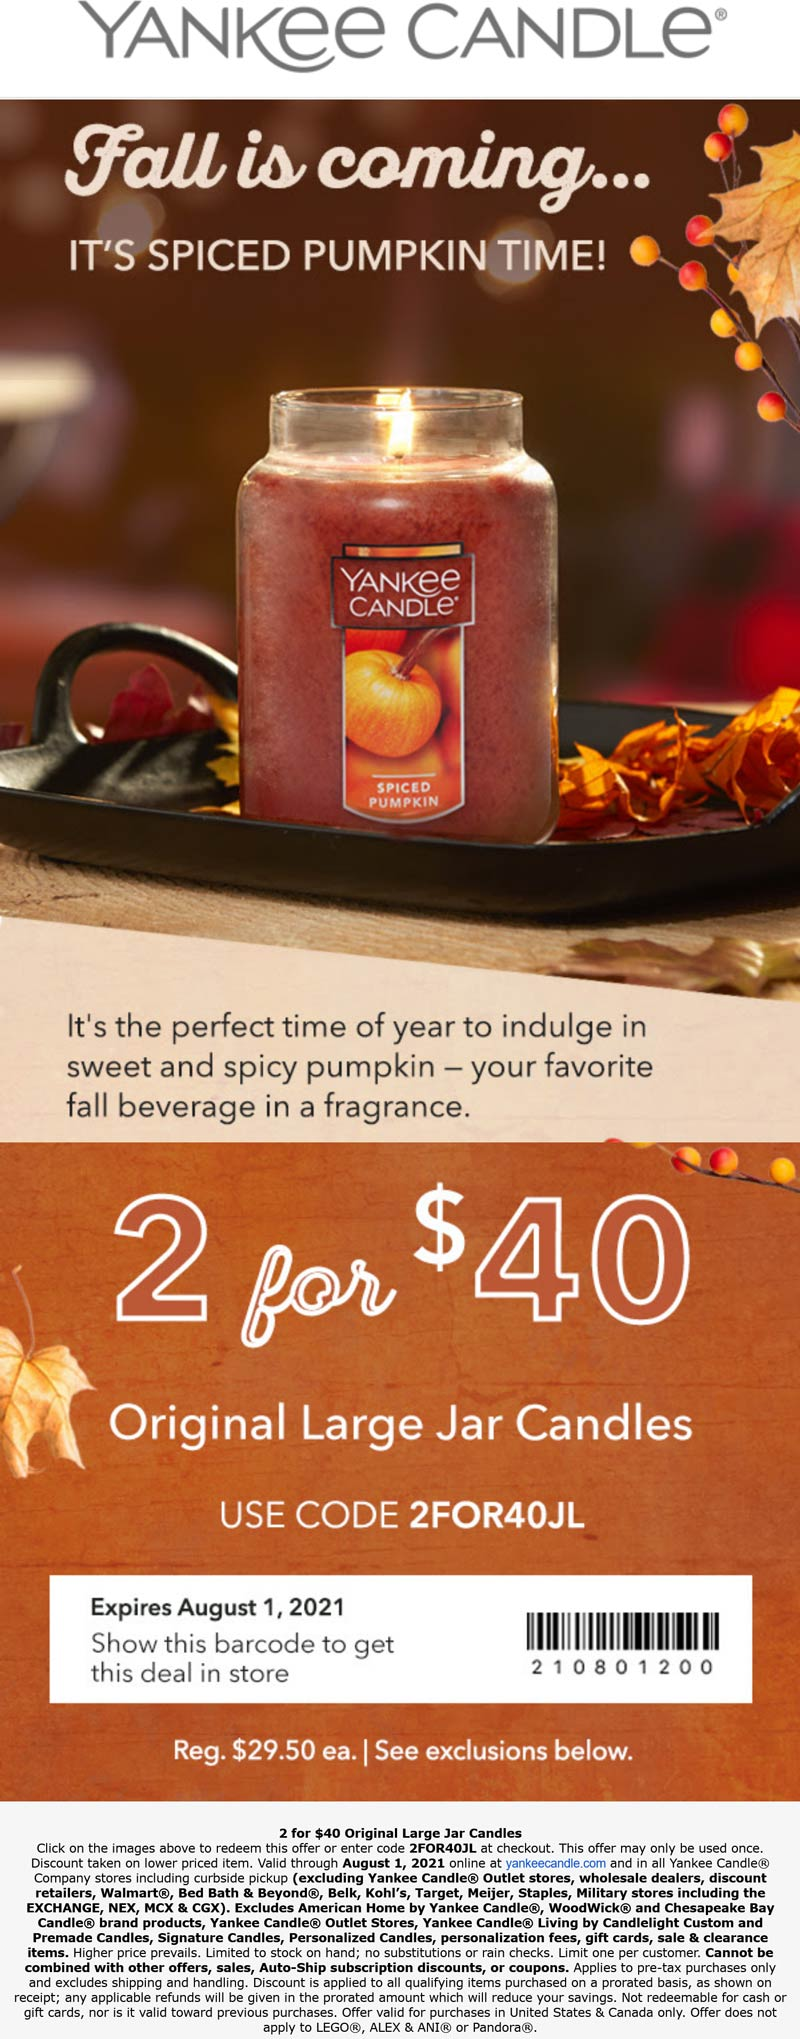 Yankee Candle stores Coupon  2 large candles for $40 at Yankee Candle, or online via promo code 2FOR40JL #yankeecandle